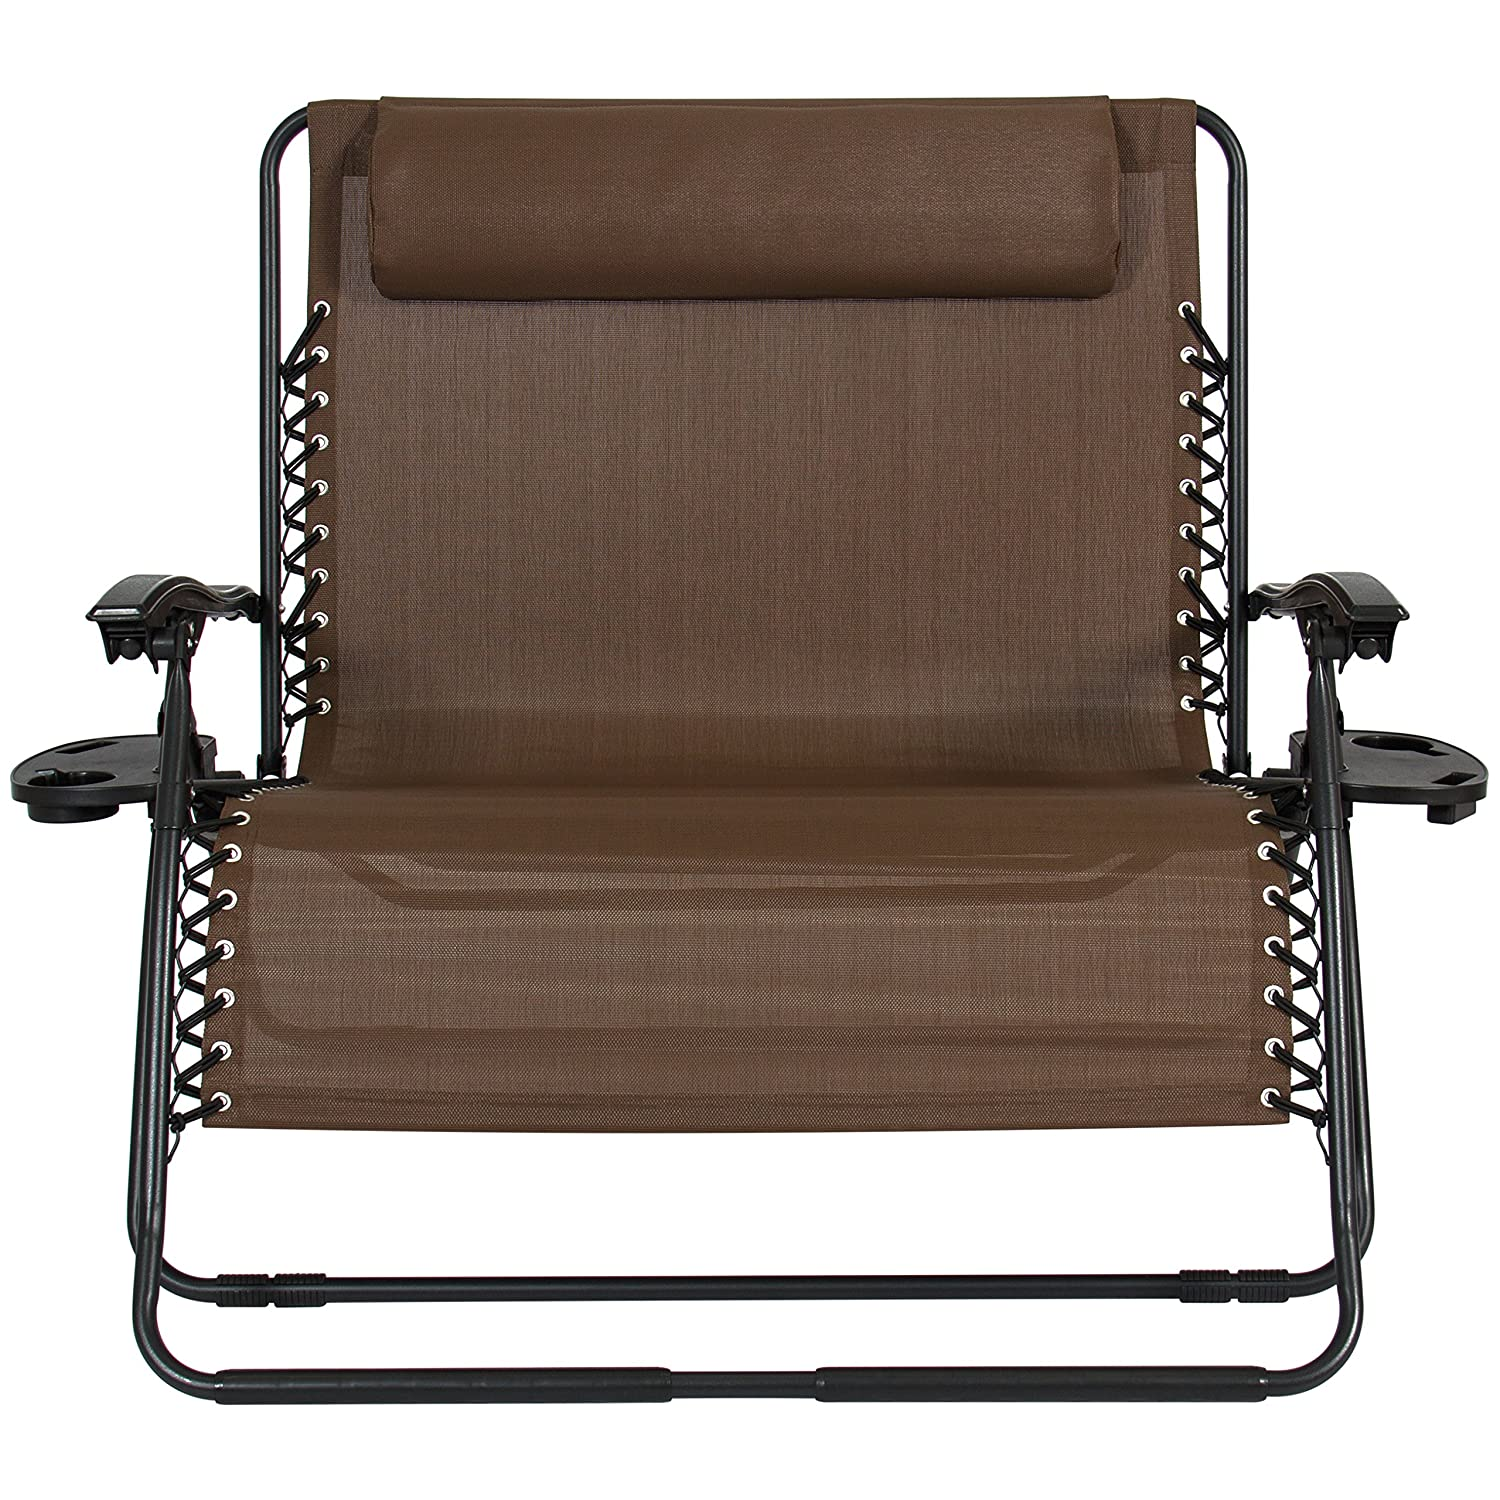 Best Choice Products 2-Person Double Wide Folding Zero Gravity Chair Patio Lounger w Cup Holders – Brown